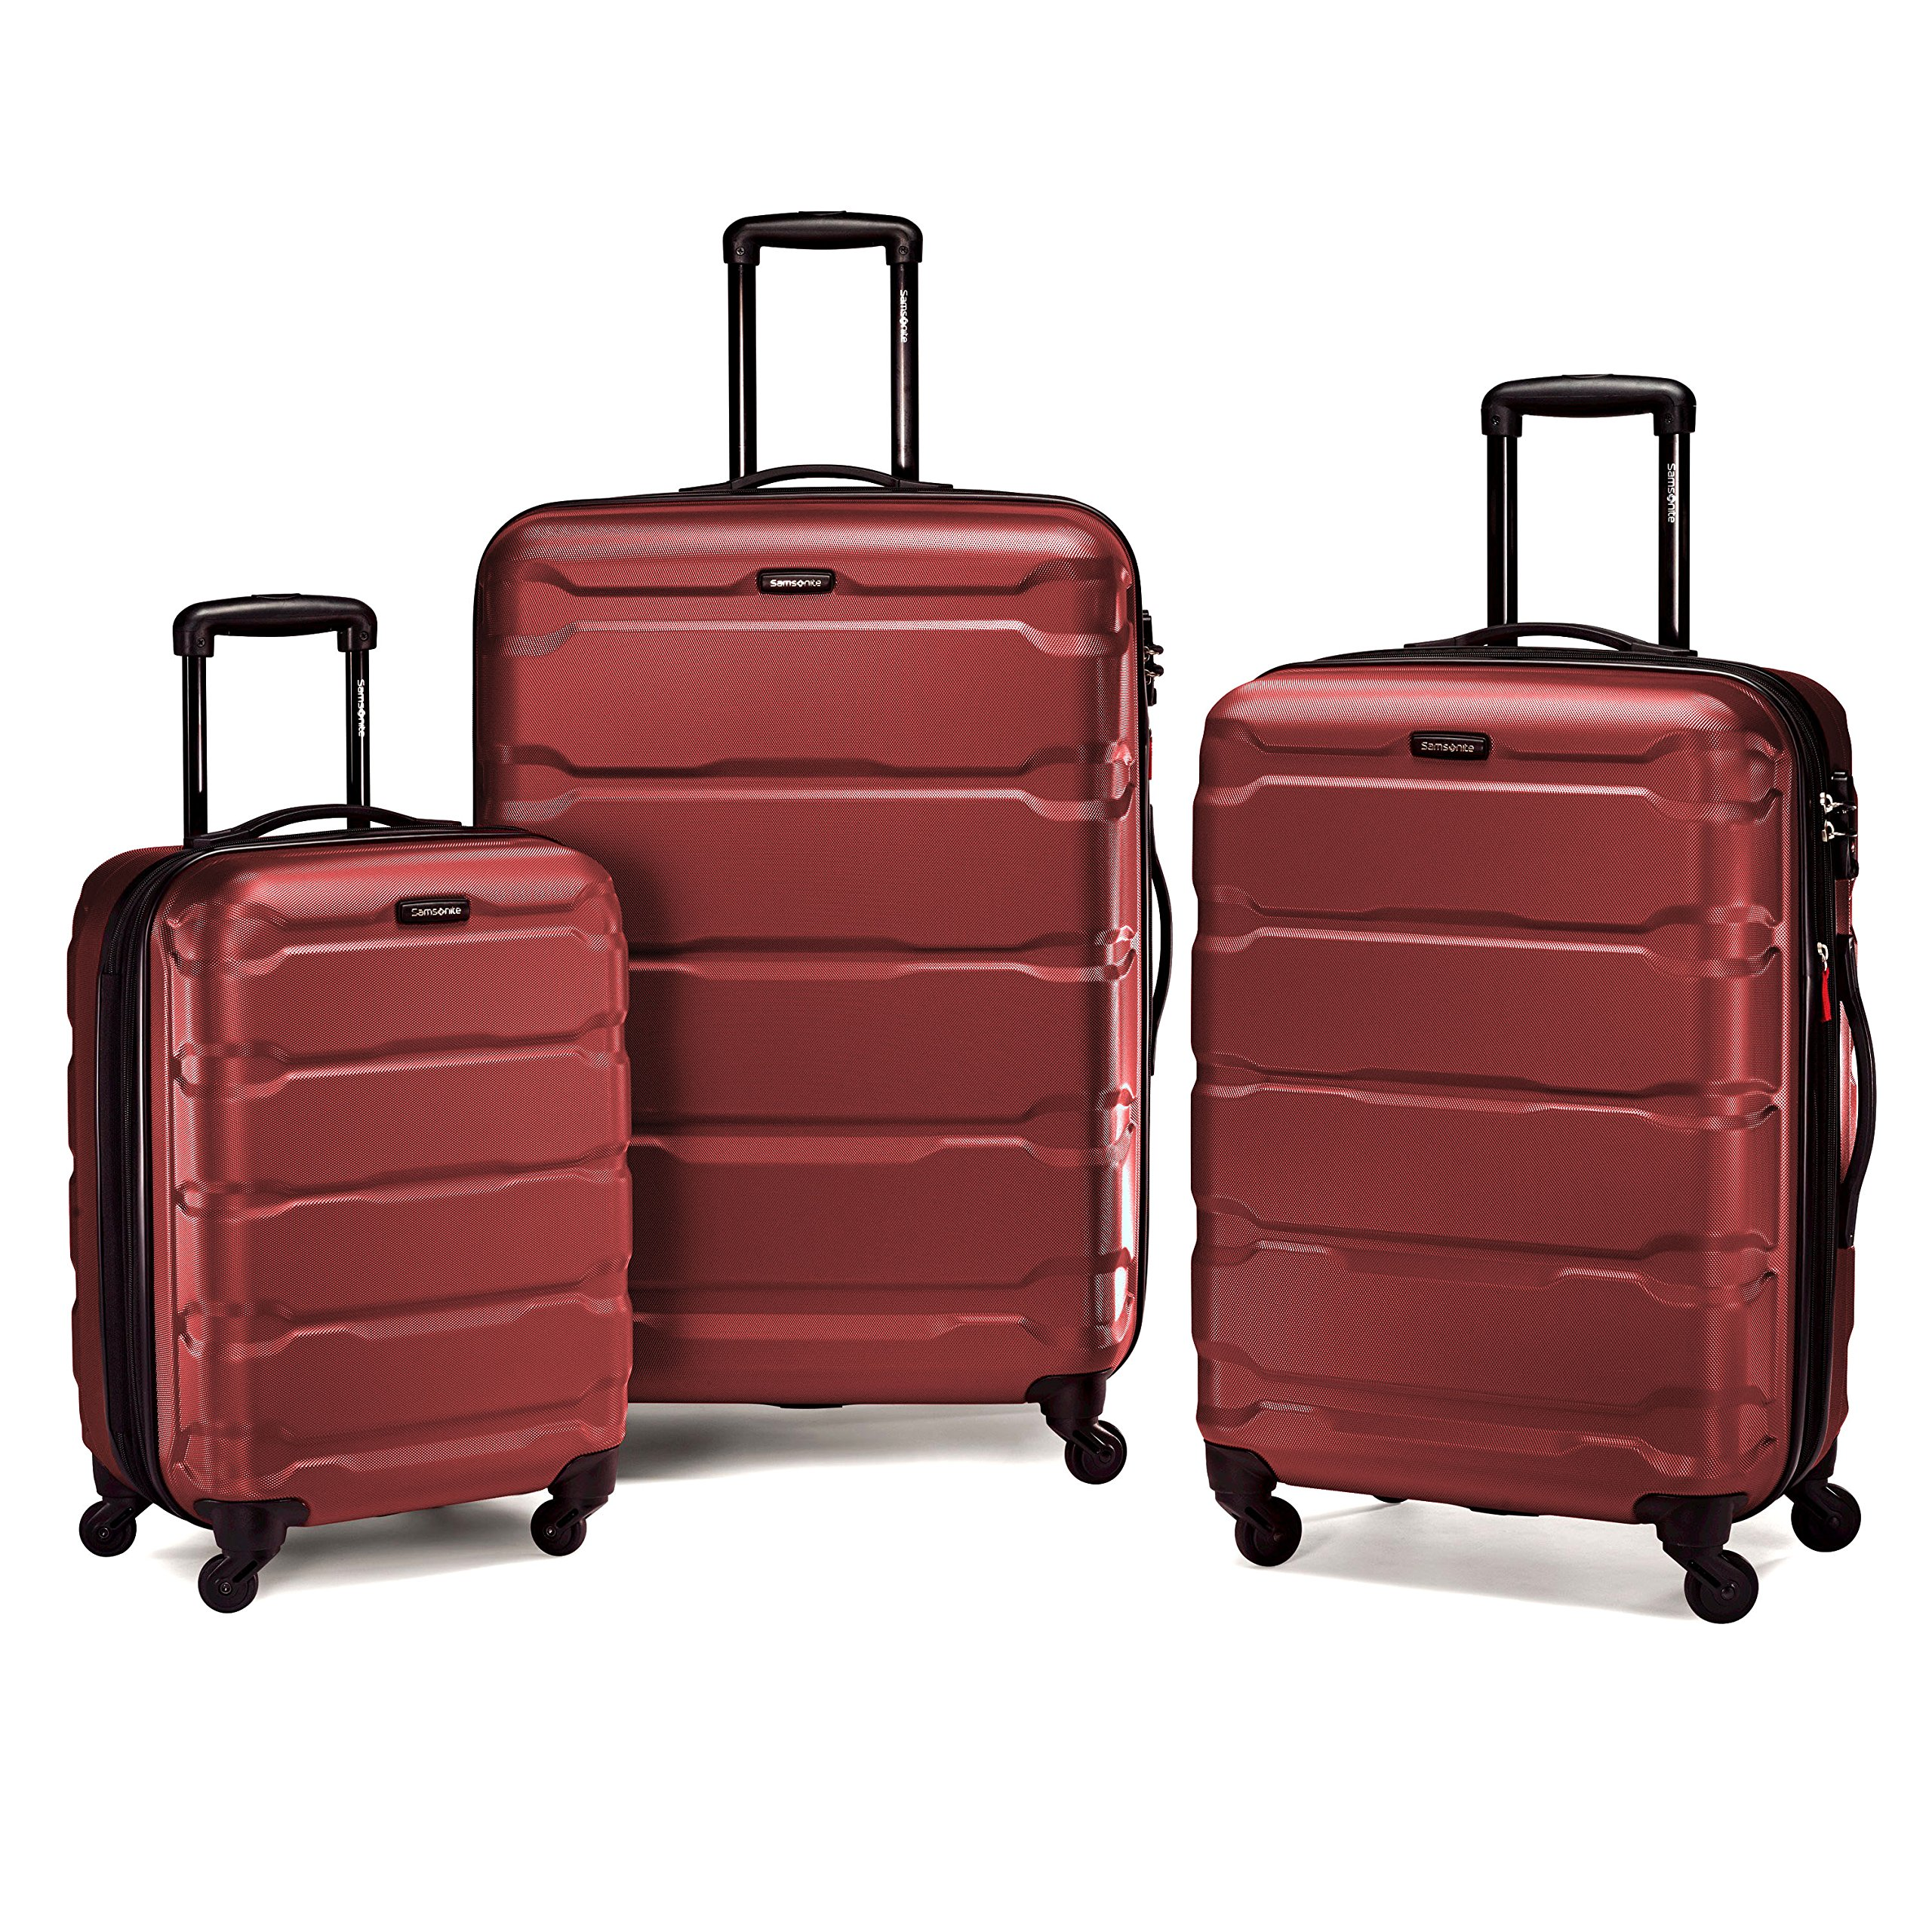 Samsonite Omni Hardside 3 Piece Nested Set (20/24/28) (Red) by Samsonite